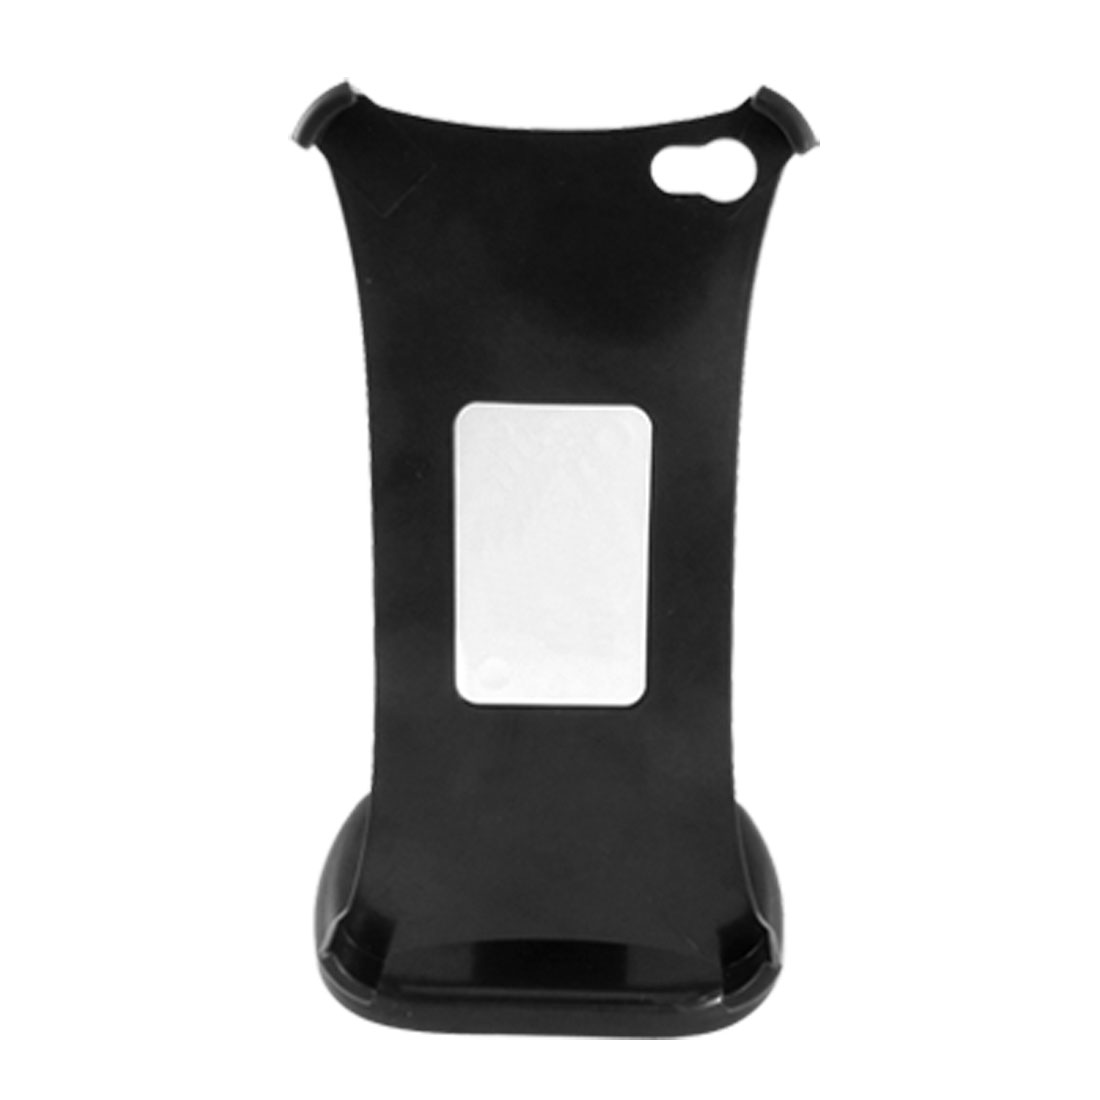 Plastic Cradle Bracket Stand Console for iPhone 4 4G Black